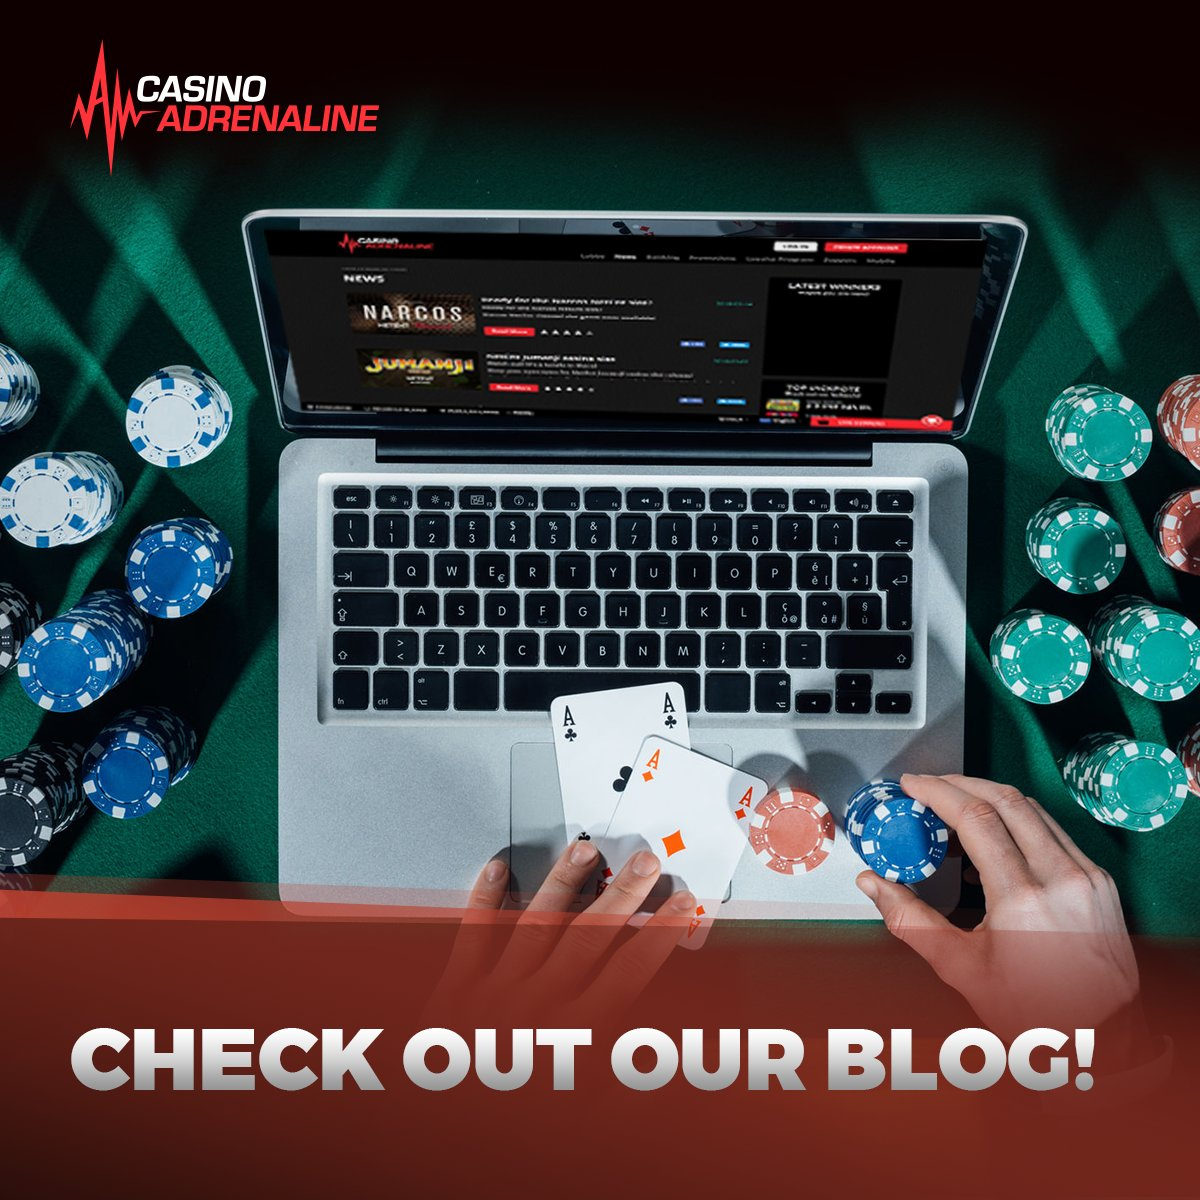 test Twitter Media - Visit our Casino Adrenaline #Blog and be informed about games news and trends! 🙂 #CasinoAdrenaline  Visit: https://t.co/VjkPpPDtAi https://t.co/1FfHT1TM9D